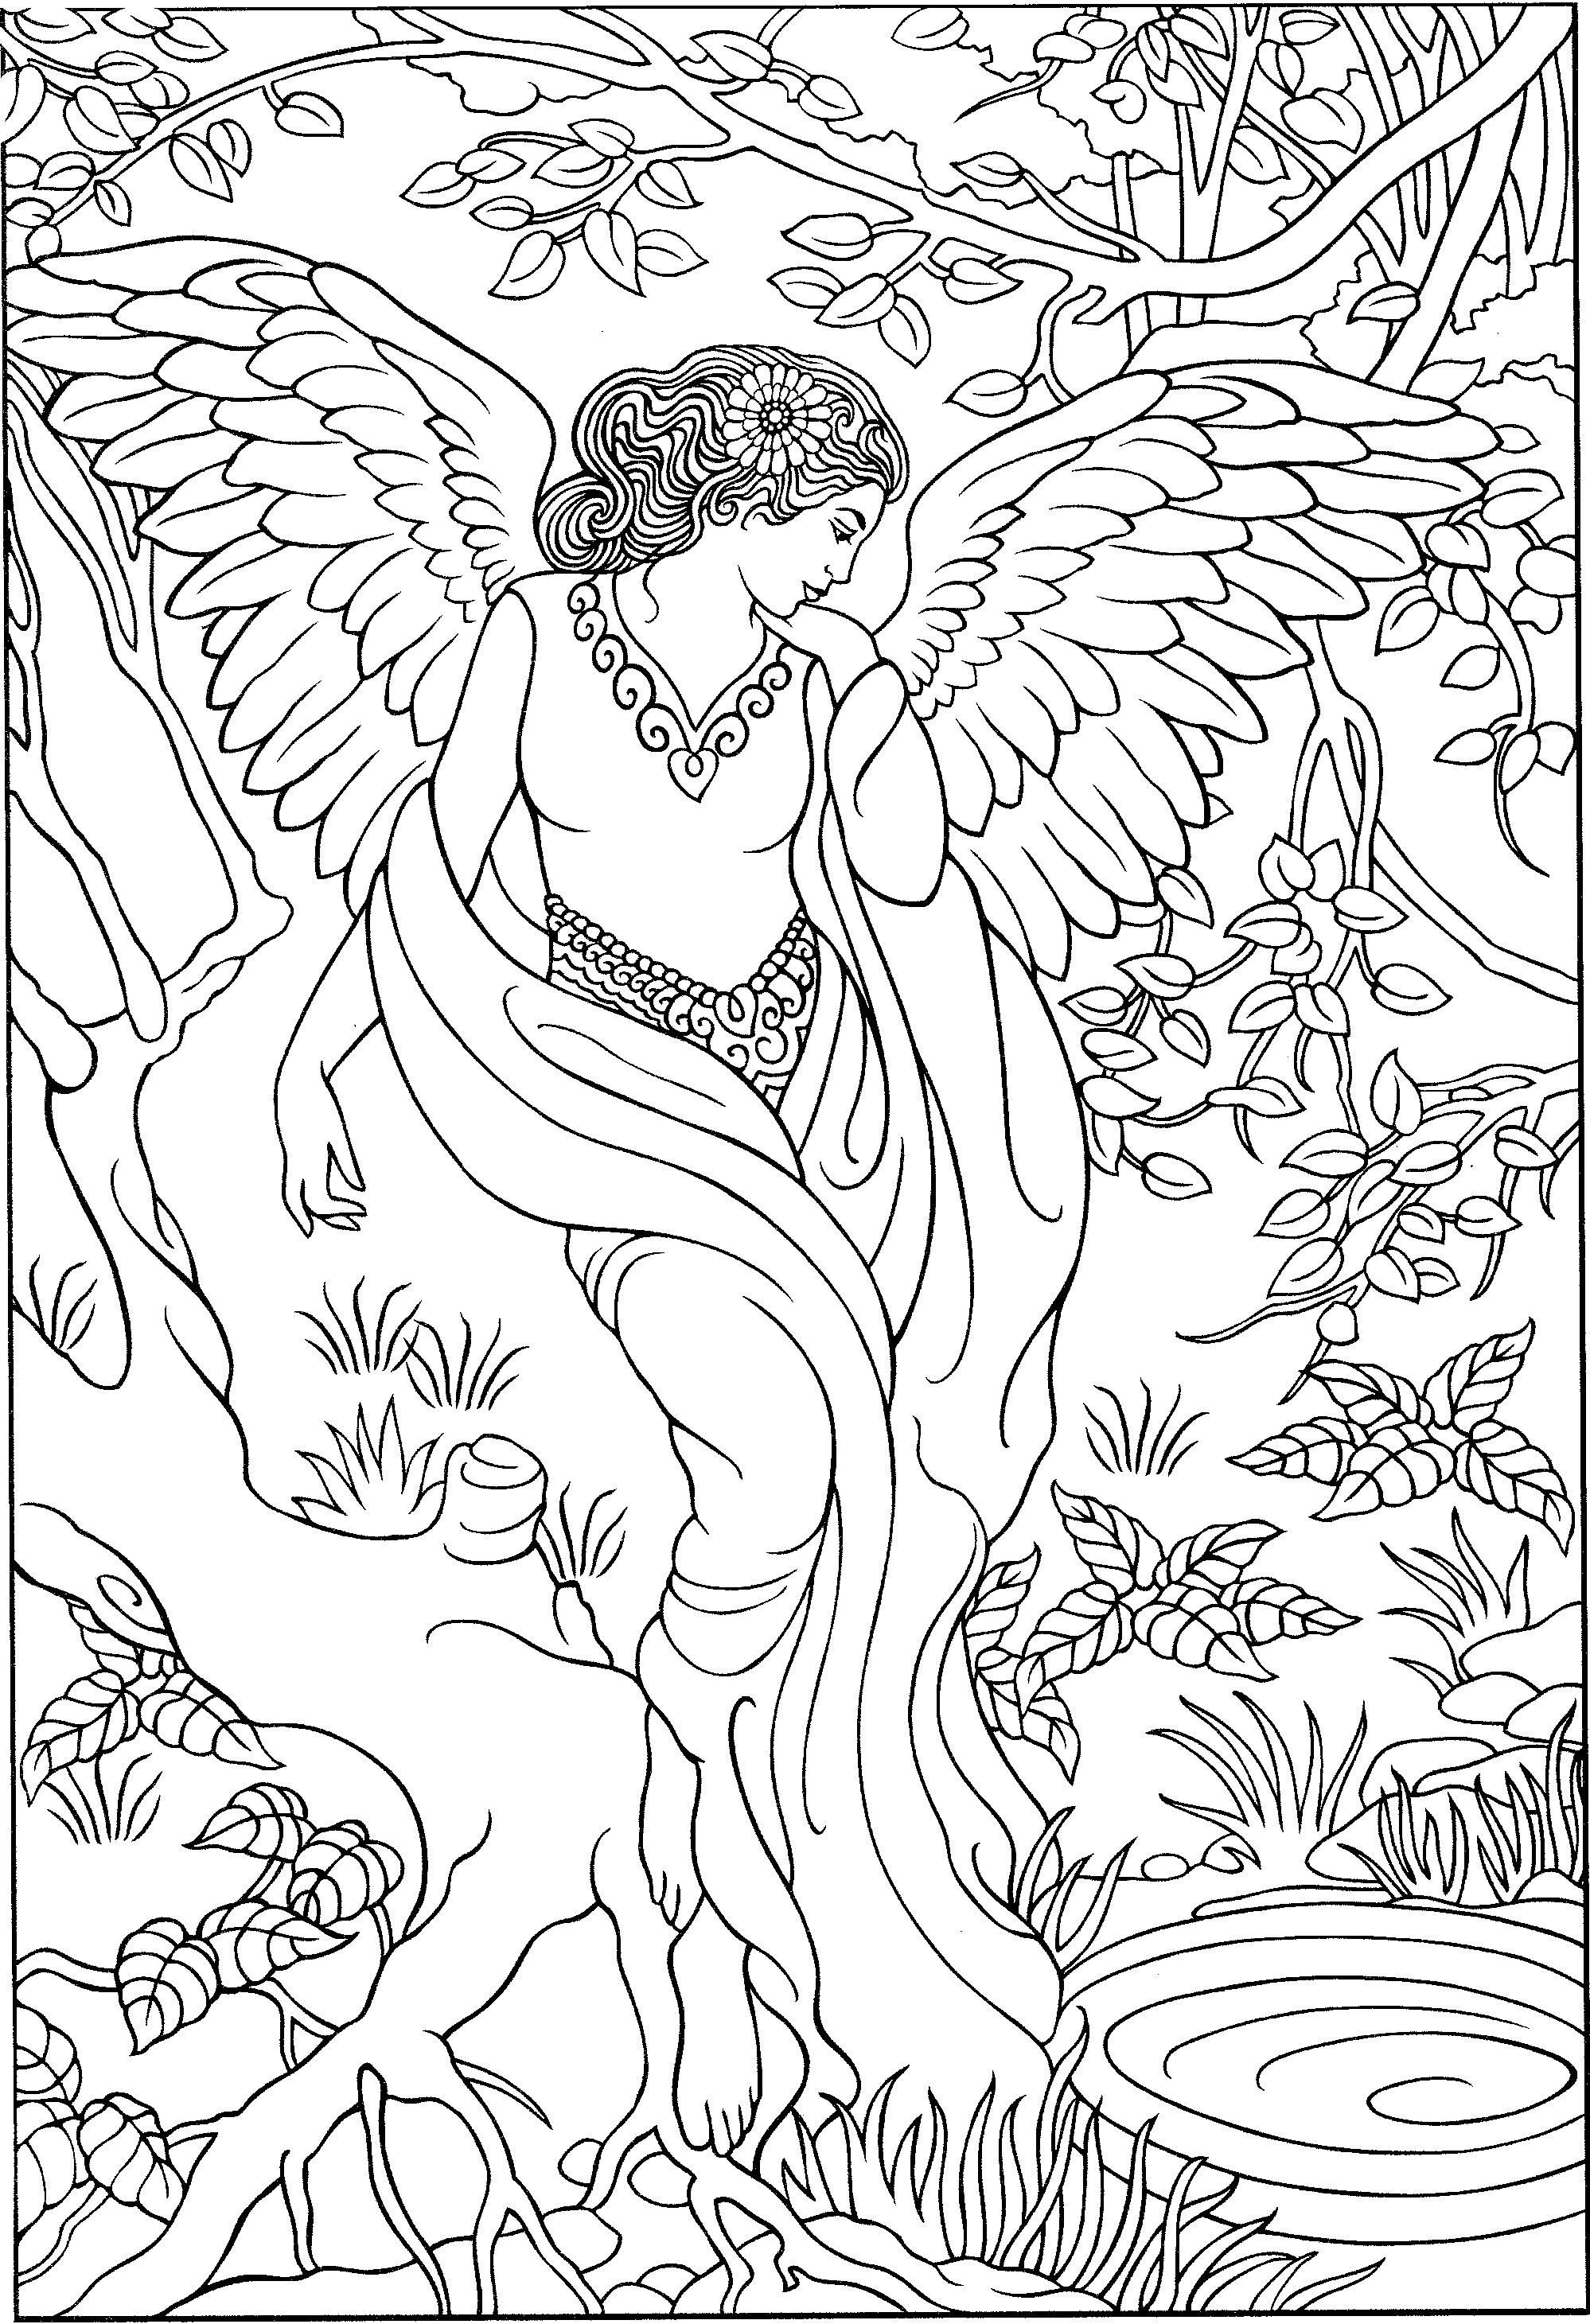 Beautiful angel coloring page | Angel coloring pages, Fairy ...